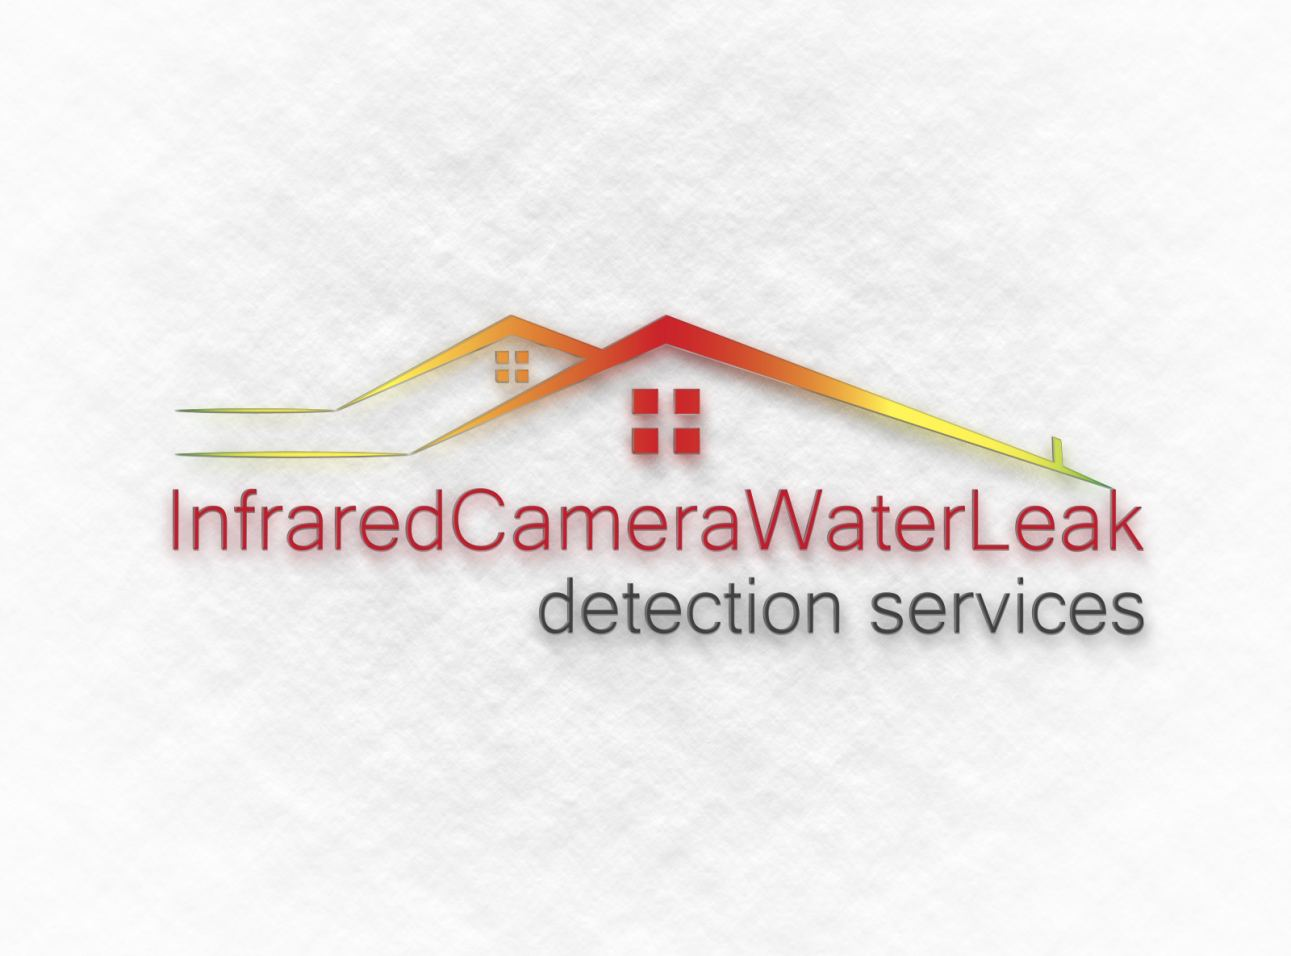 5 Texas Cities Offer Infrared Camera Water Leak Detection